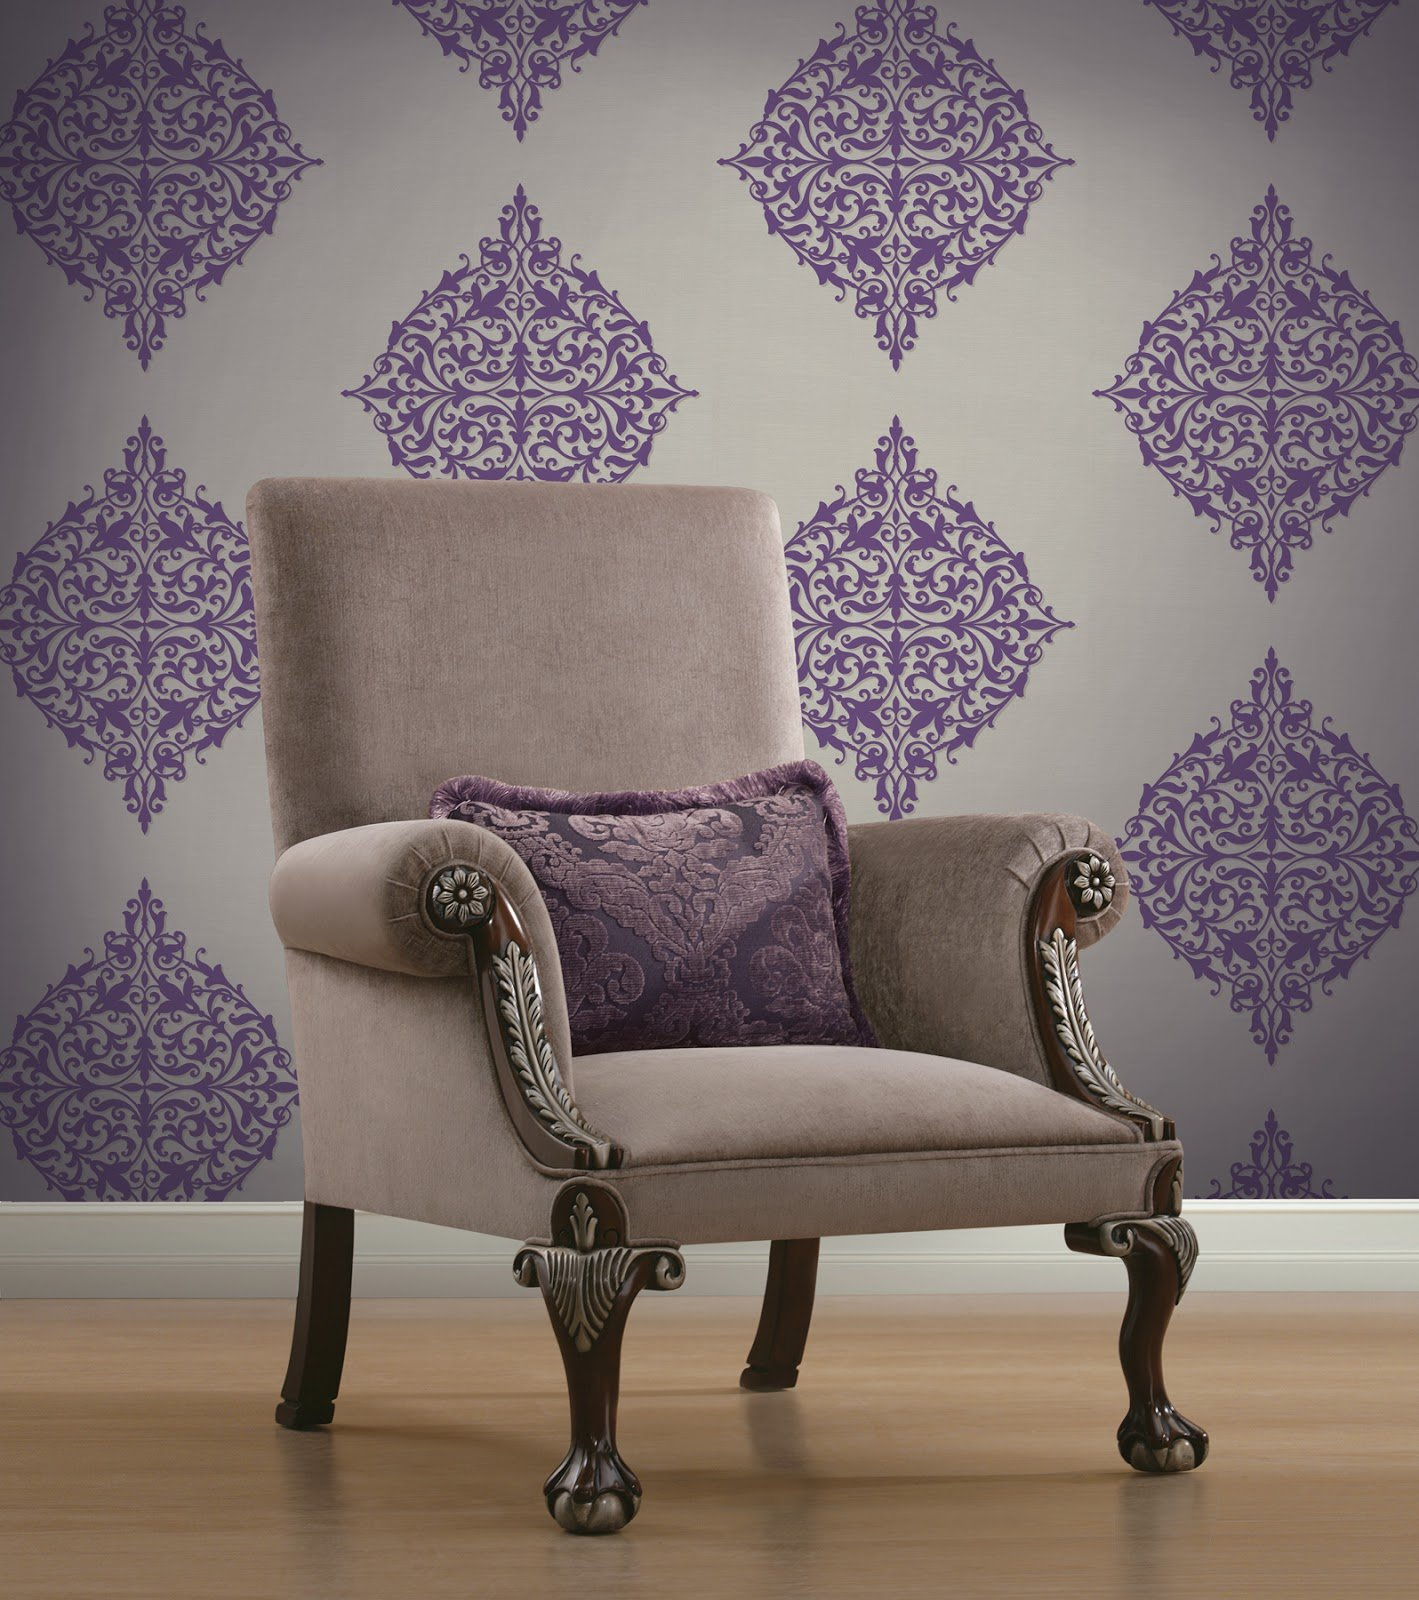 Brewster Island Grey Faux Grasscloth Wallpaper Fd23285: Large Medallion Wallpaper